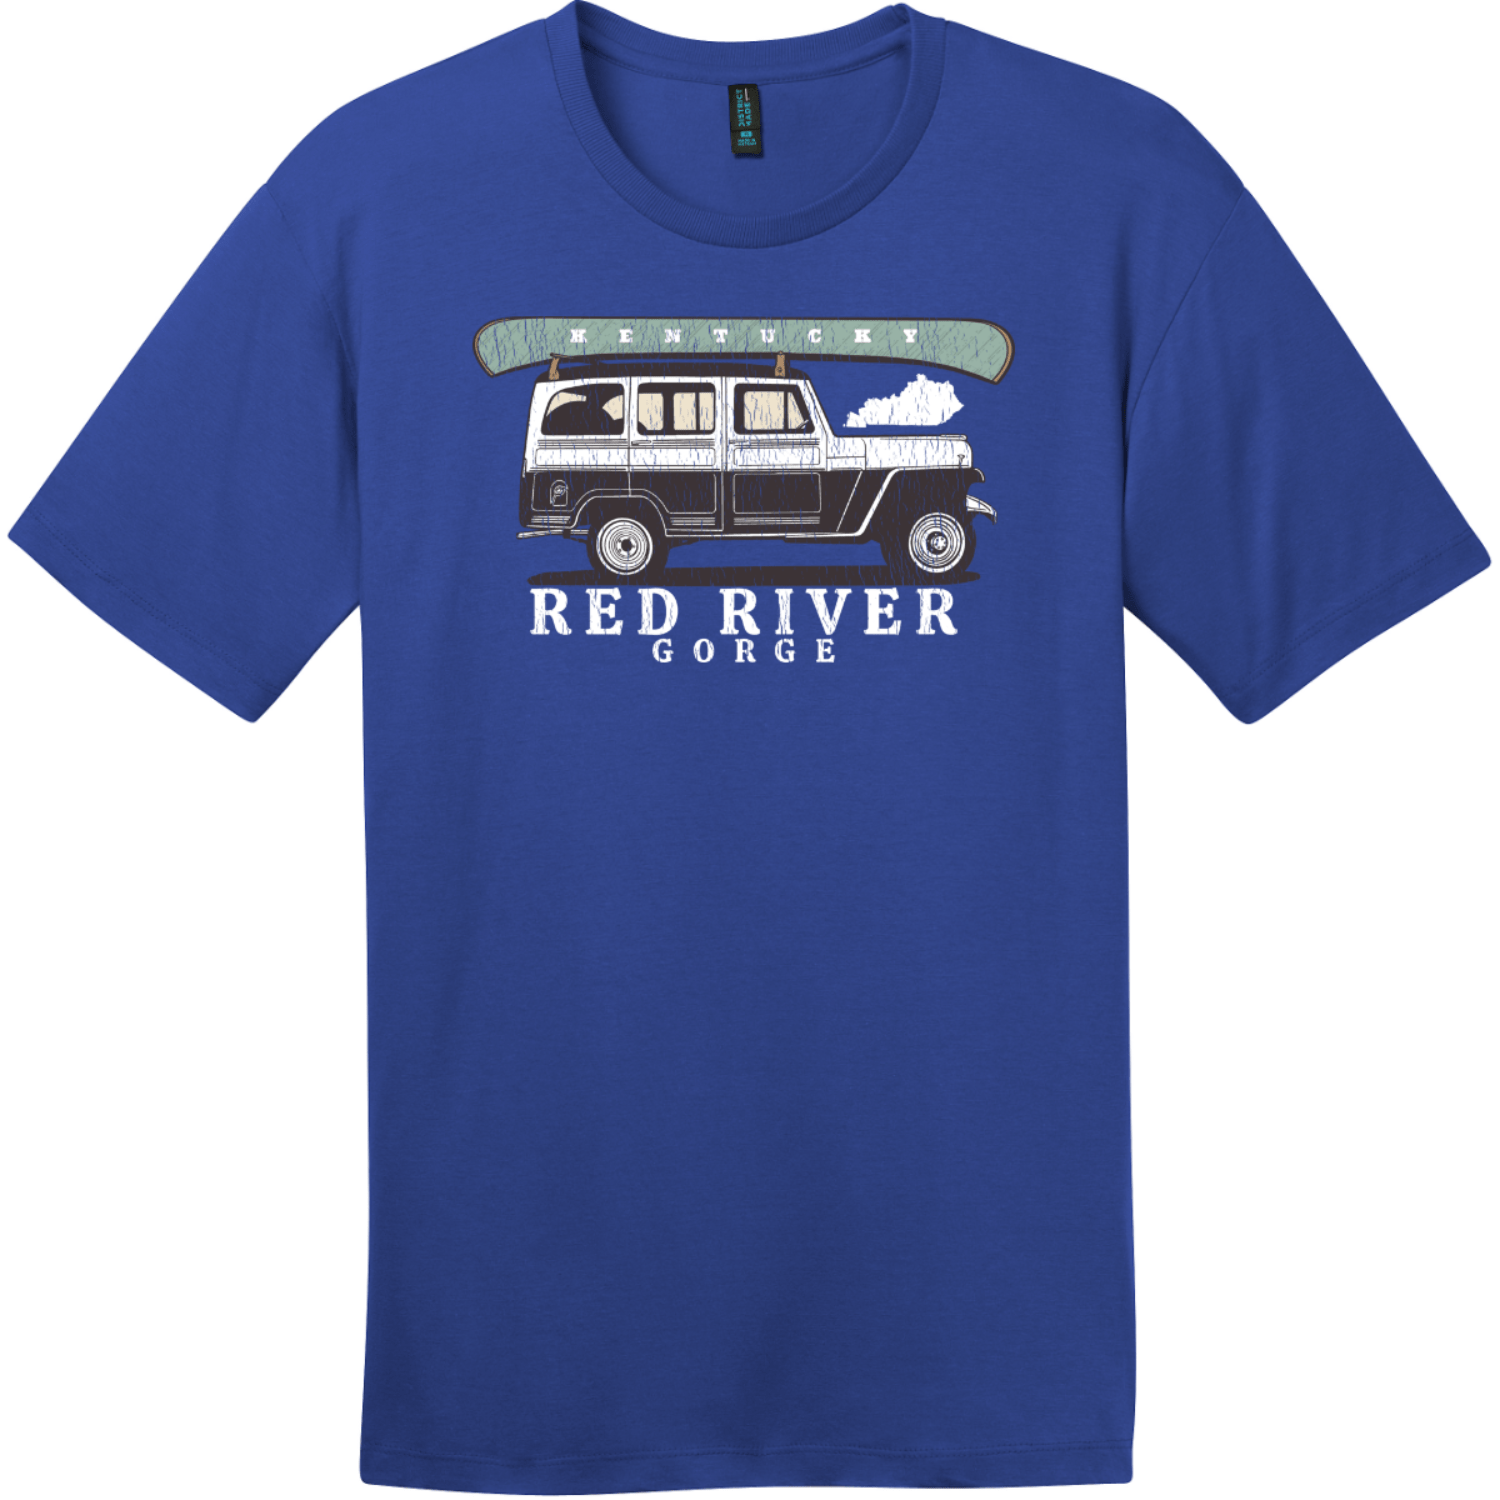 Red River Gorge Kentucky T-Shirt Deep Royal District Perfect Weight Tee DT104